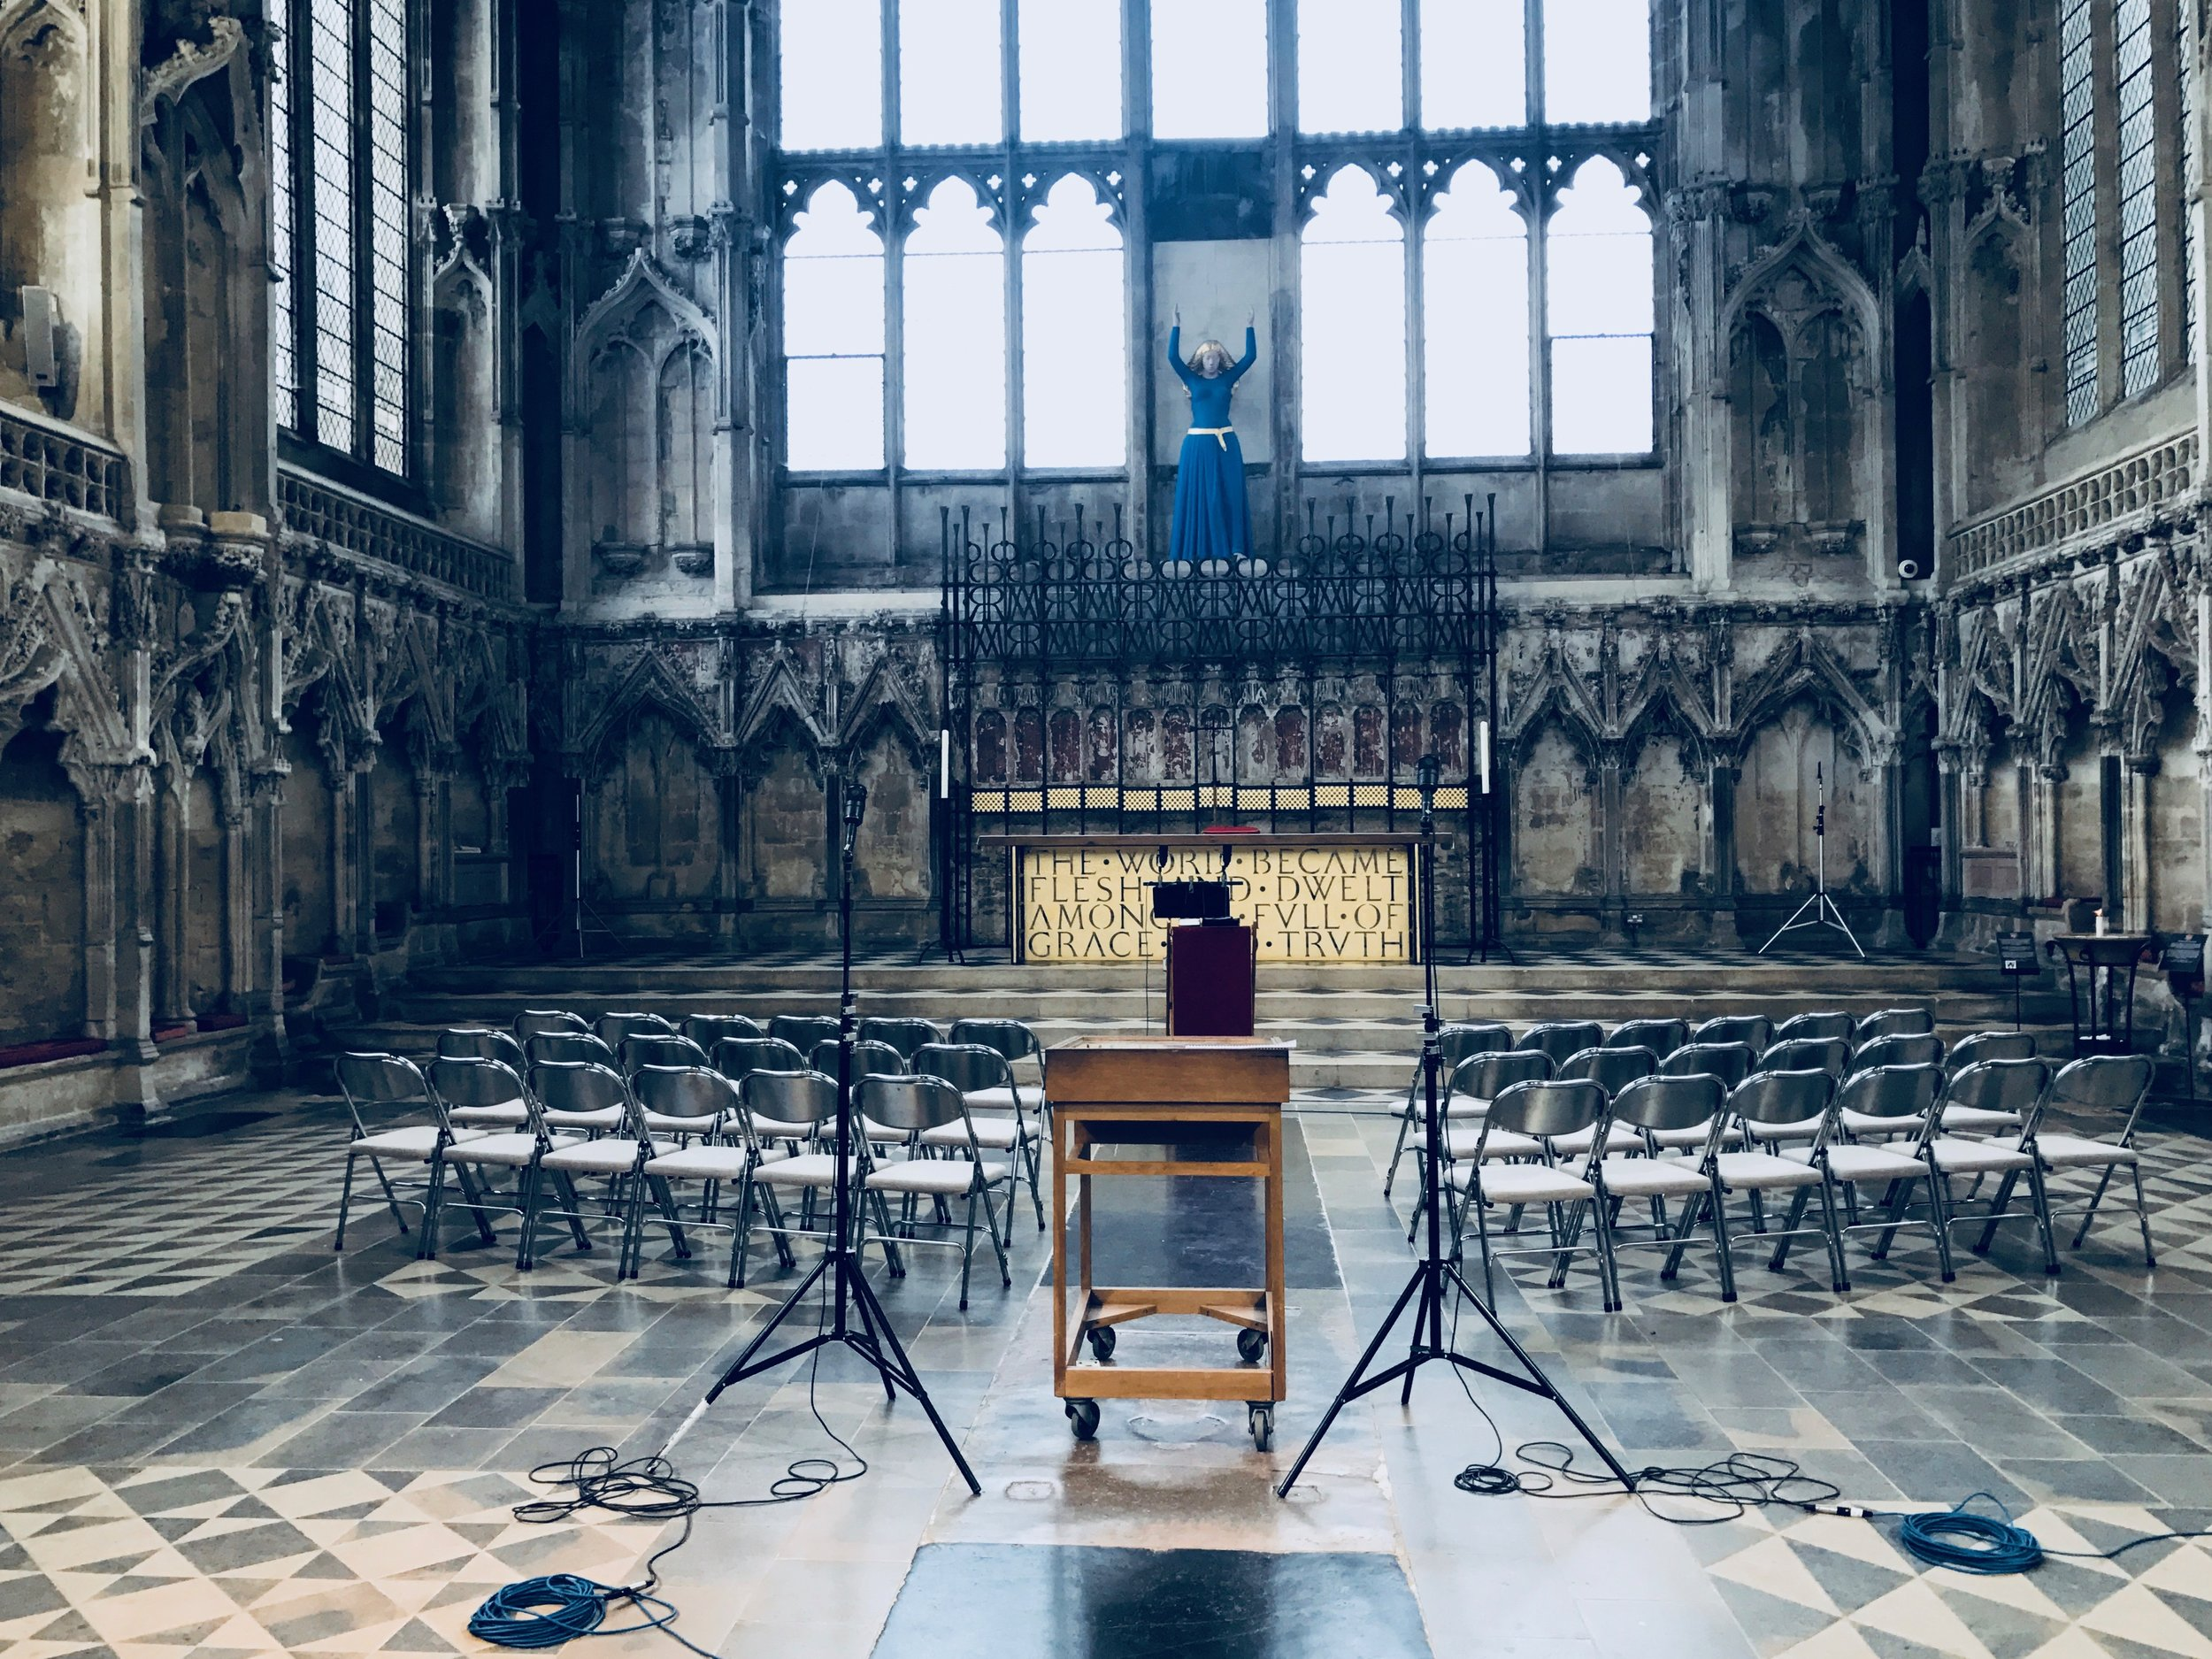 The microphones are set up ready to record in the Lady Chapel at Ely Cathedral